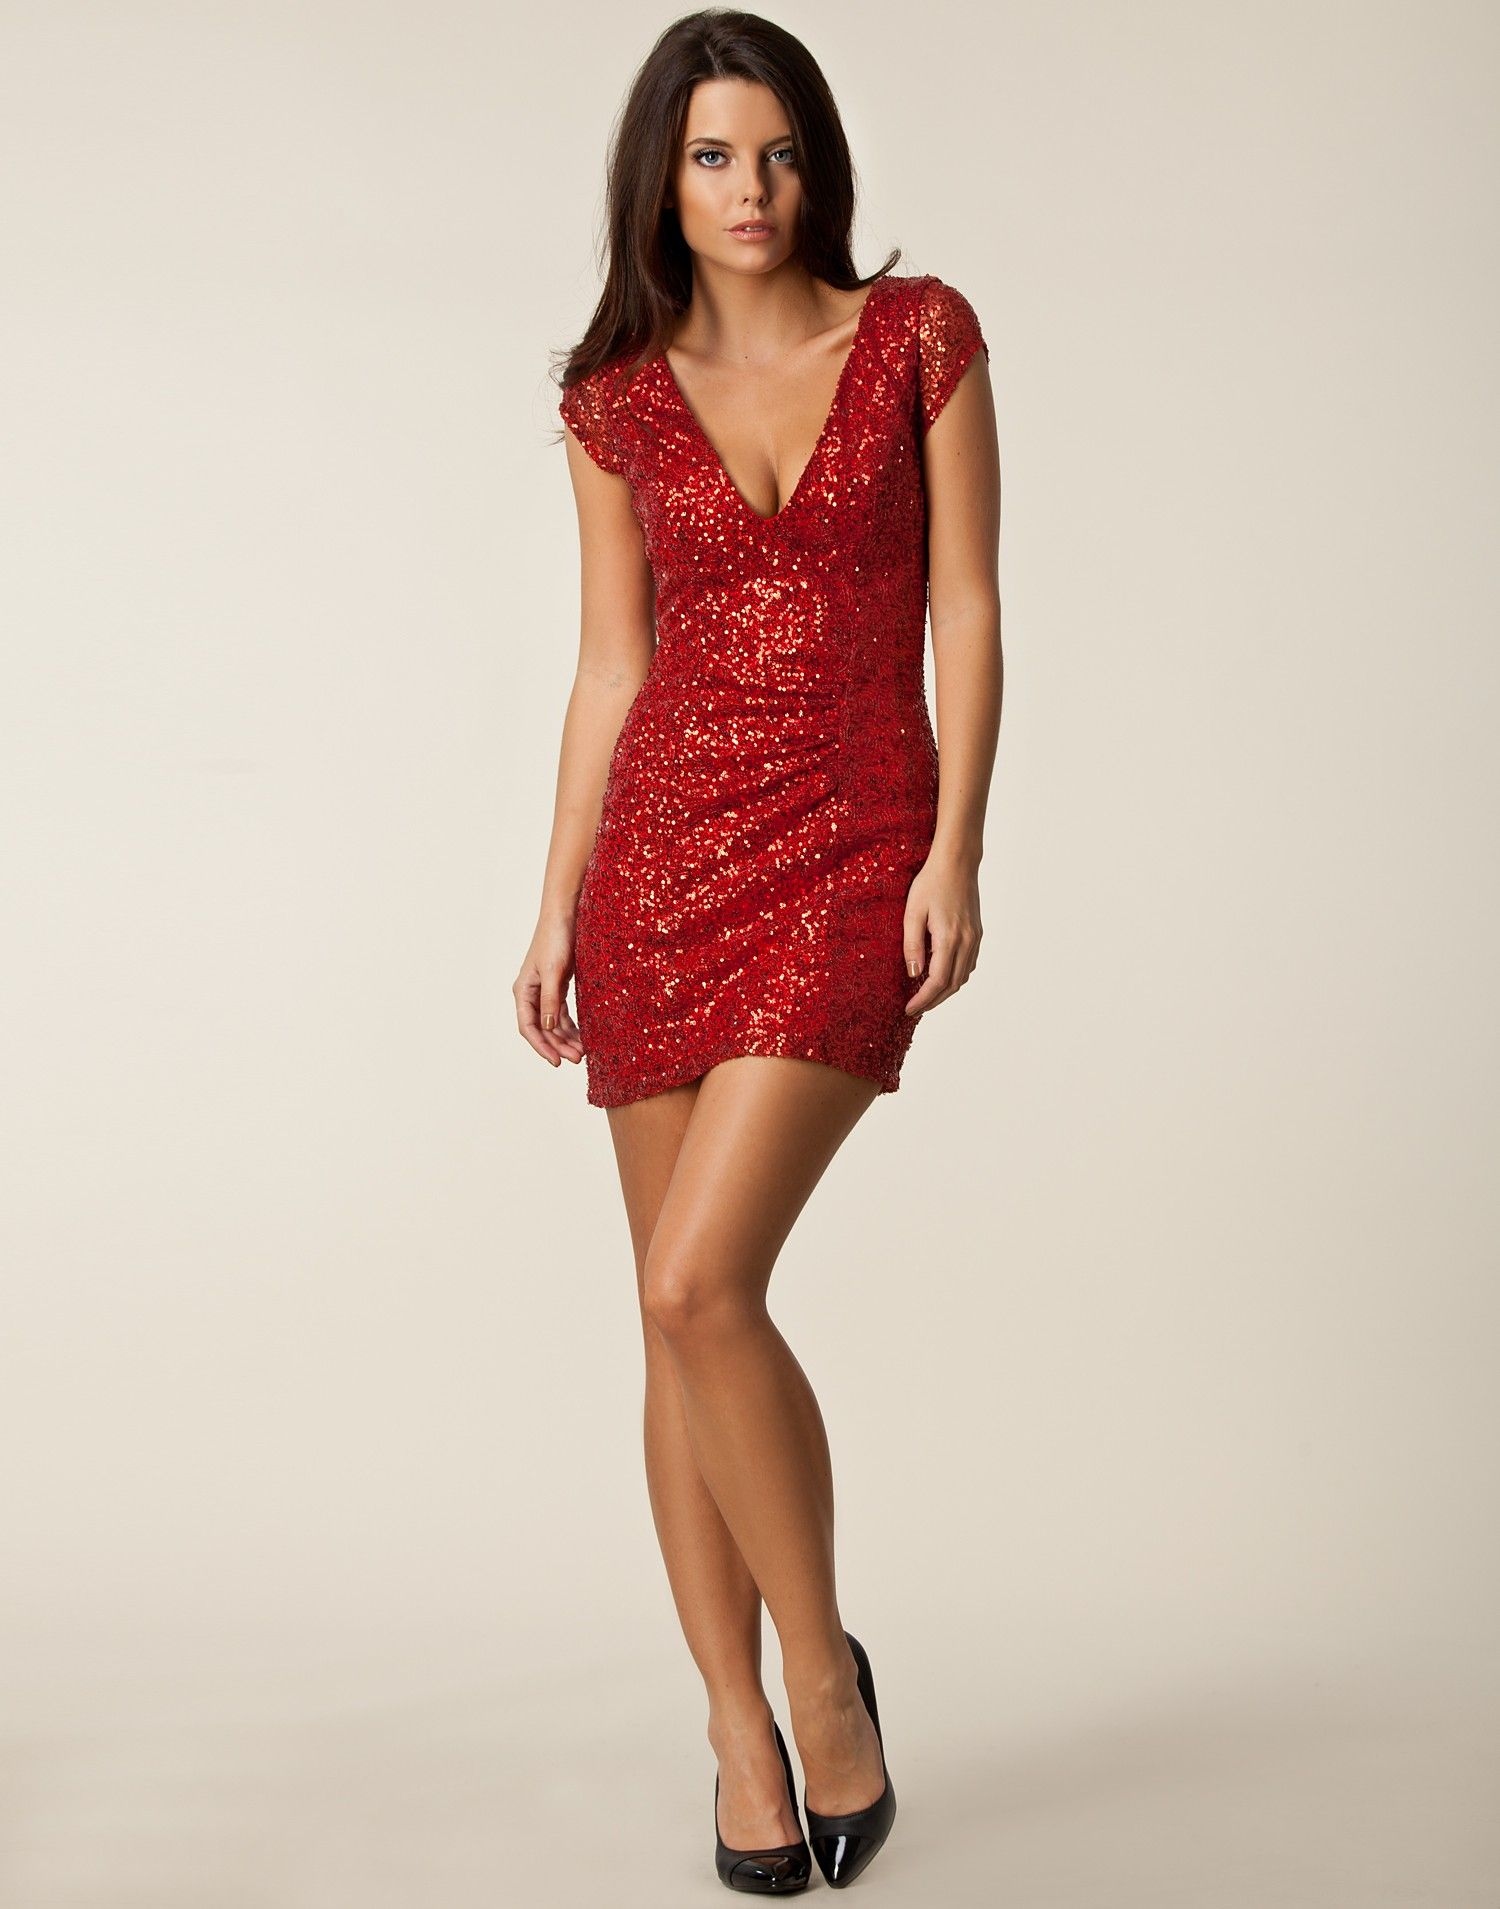 Julie Sequin Dress - Oneness - Red - Party dresses - Clothing ...